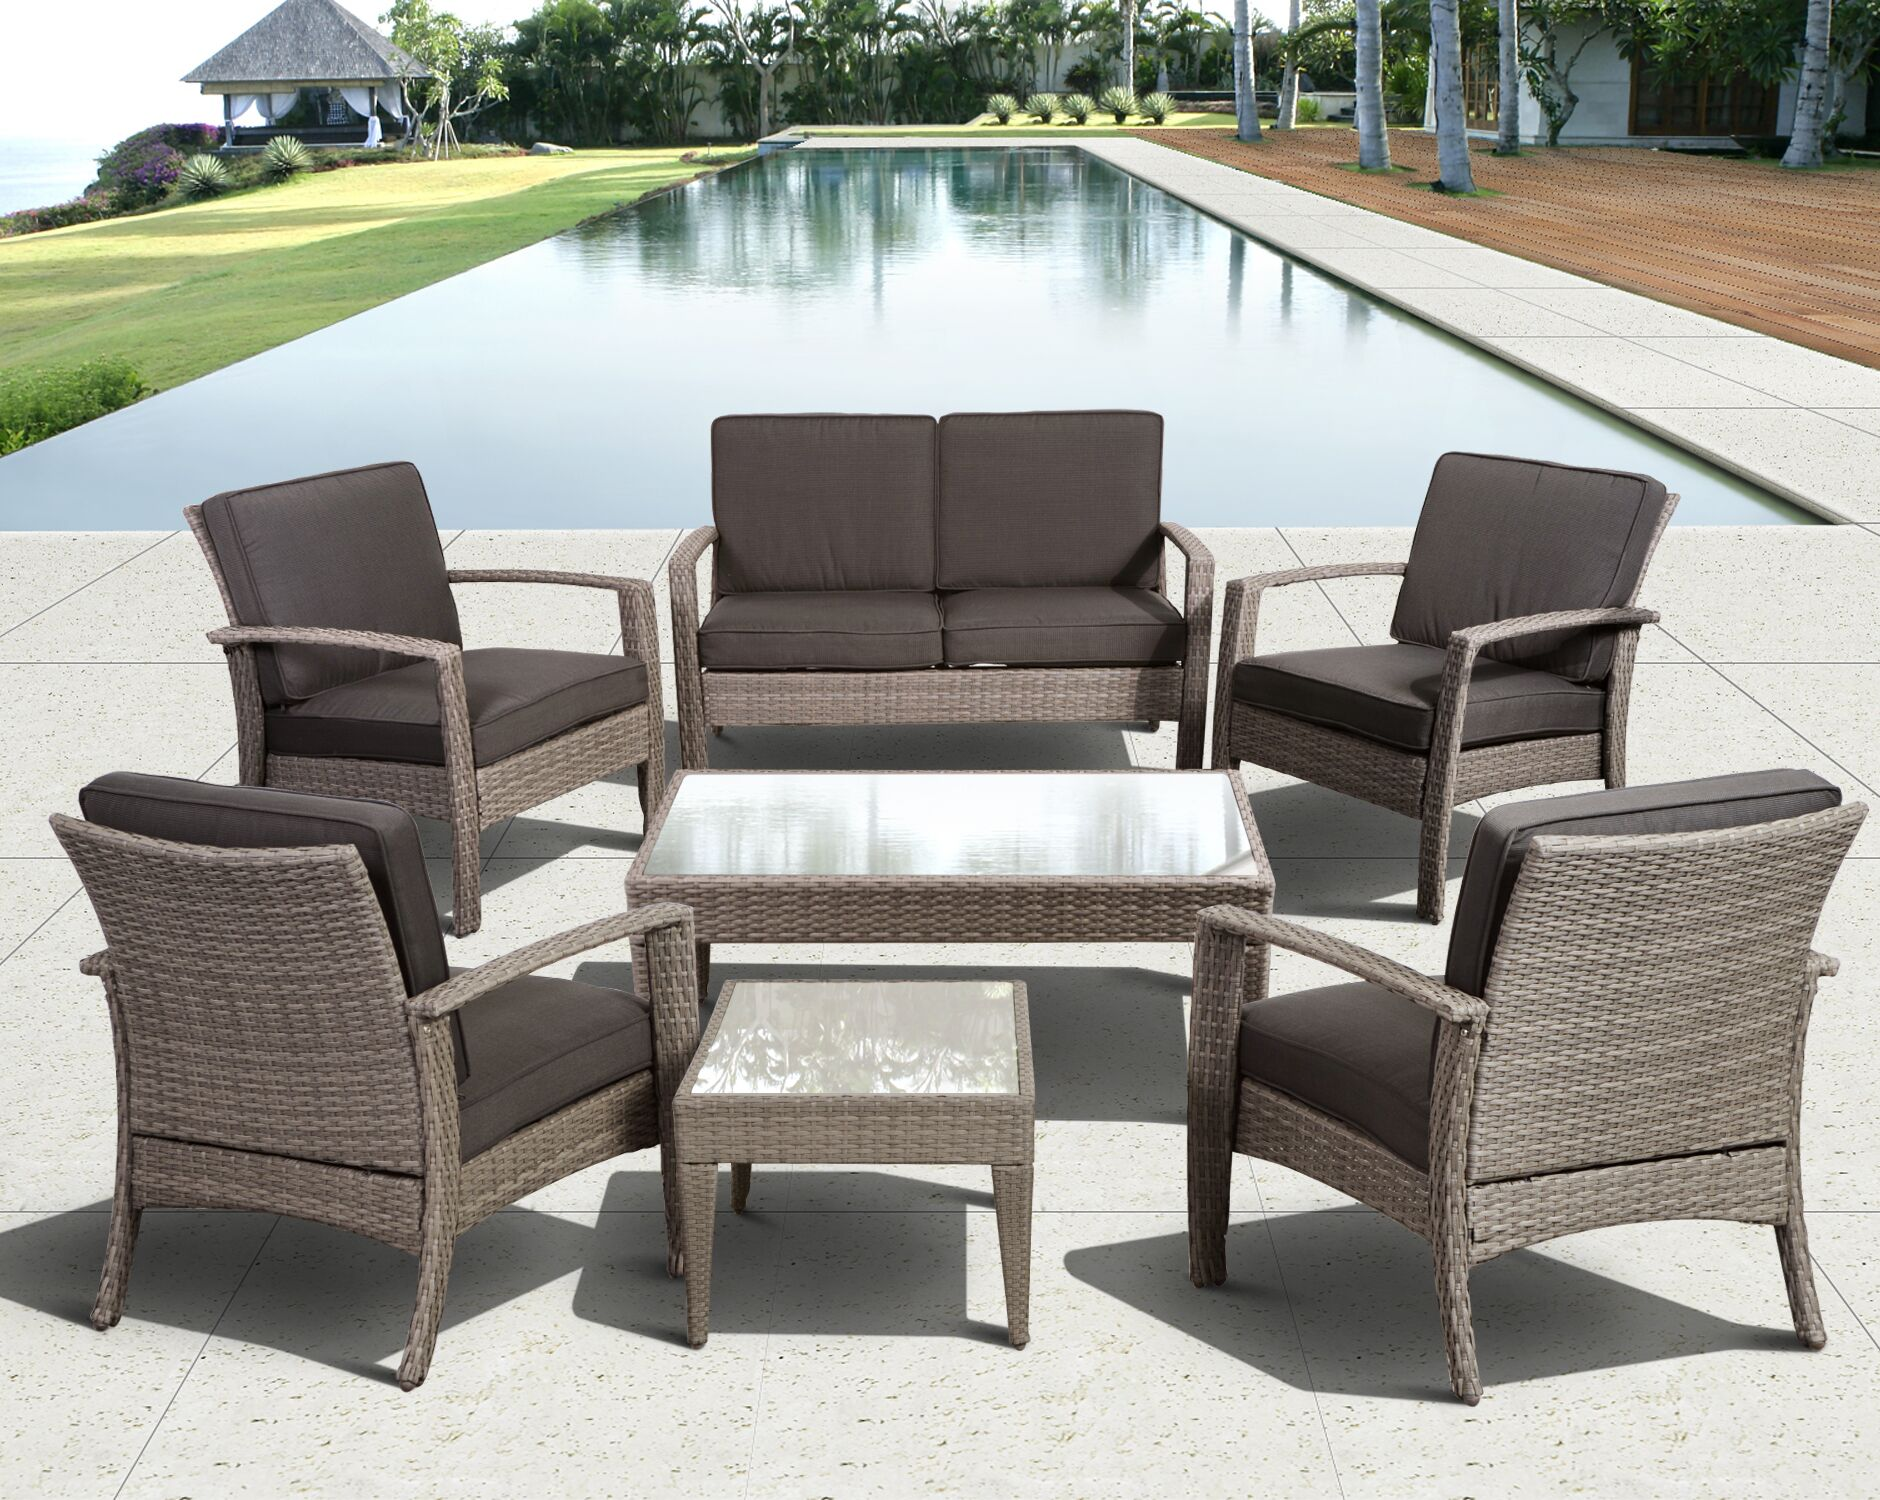 Aquia Creek 7 Piece Sofa Set with Cushions Color: Grey / Grey